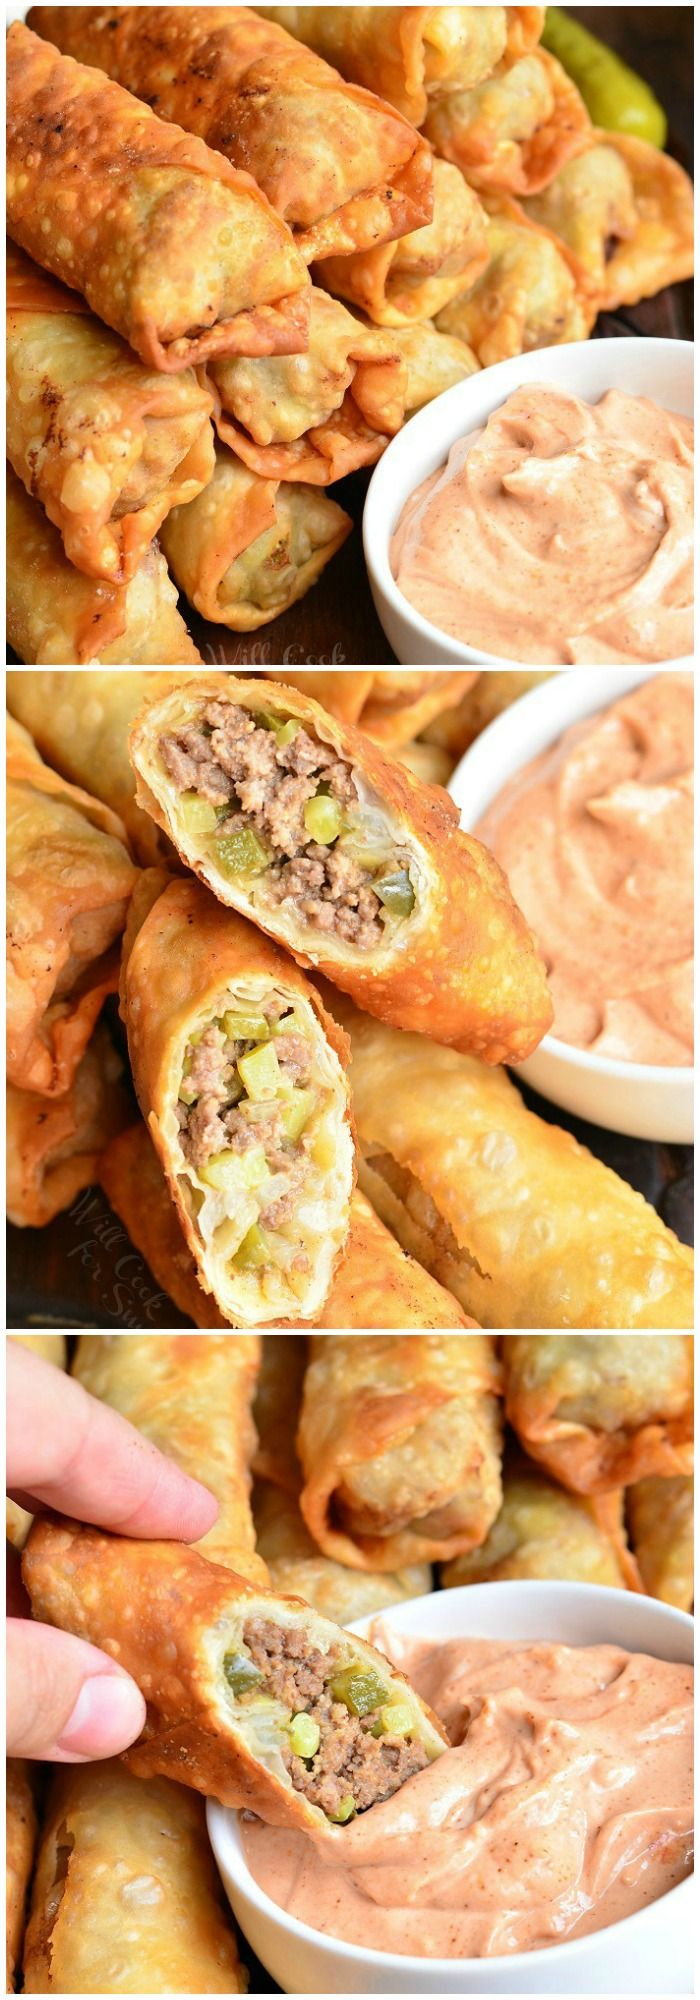 Cheeseburger Egg Rolls, stuffed with juicy ground beef, melted cheese, and…